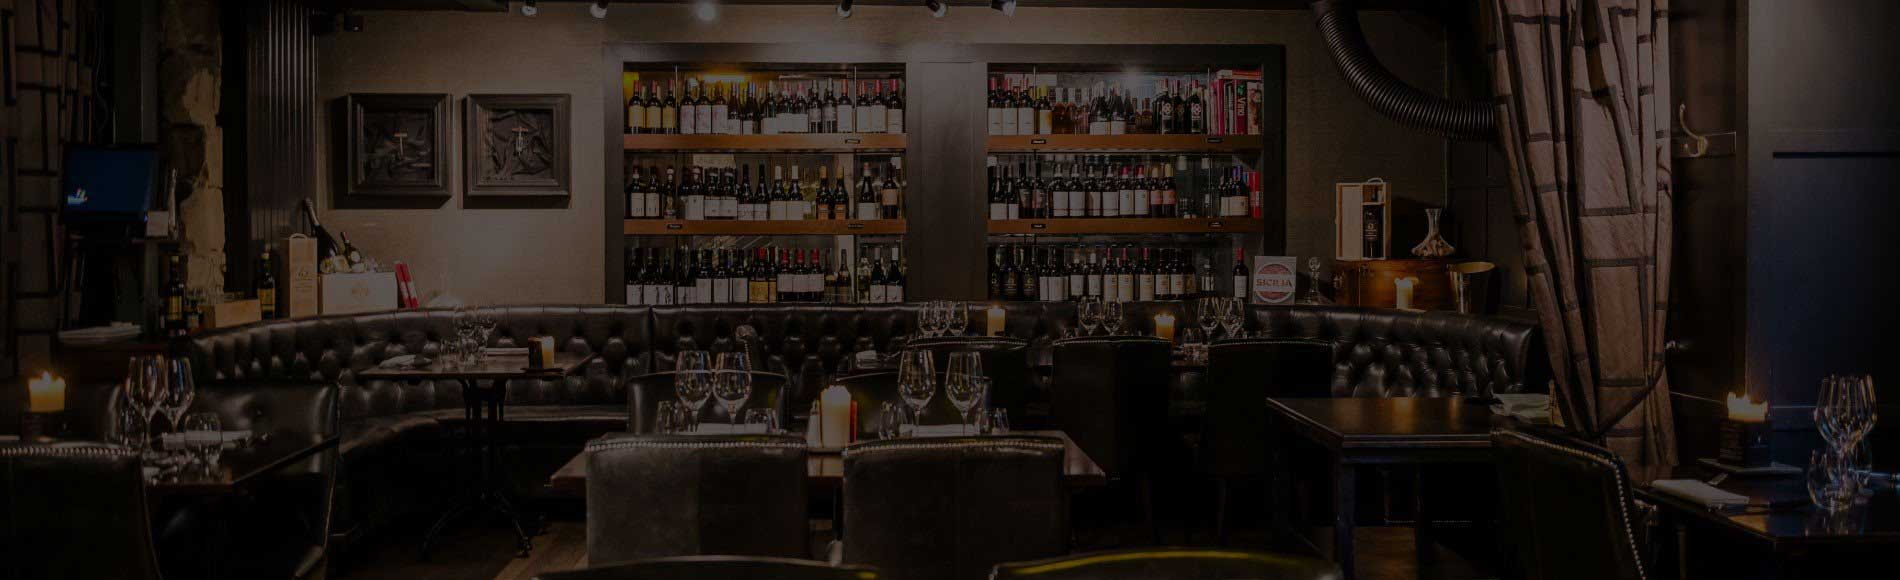 Divino Enoteca - Scotlands Finest